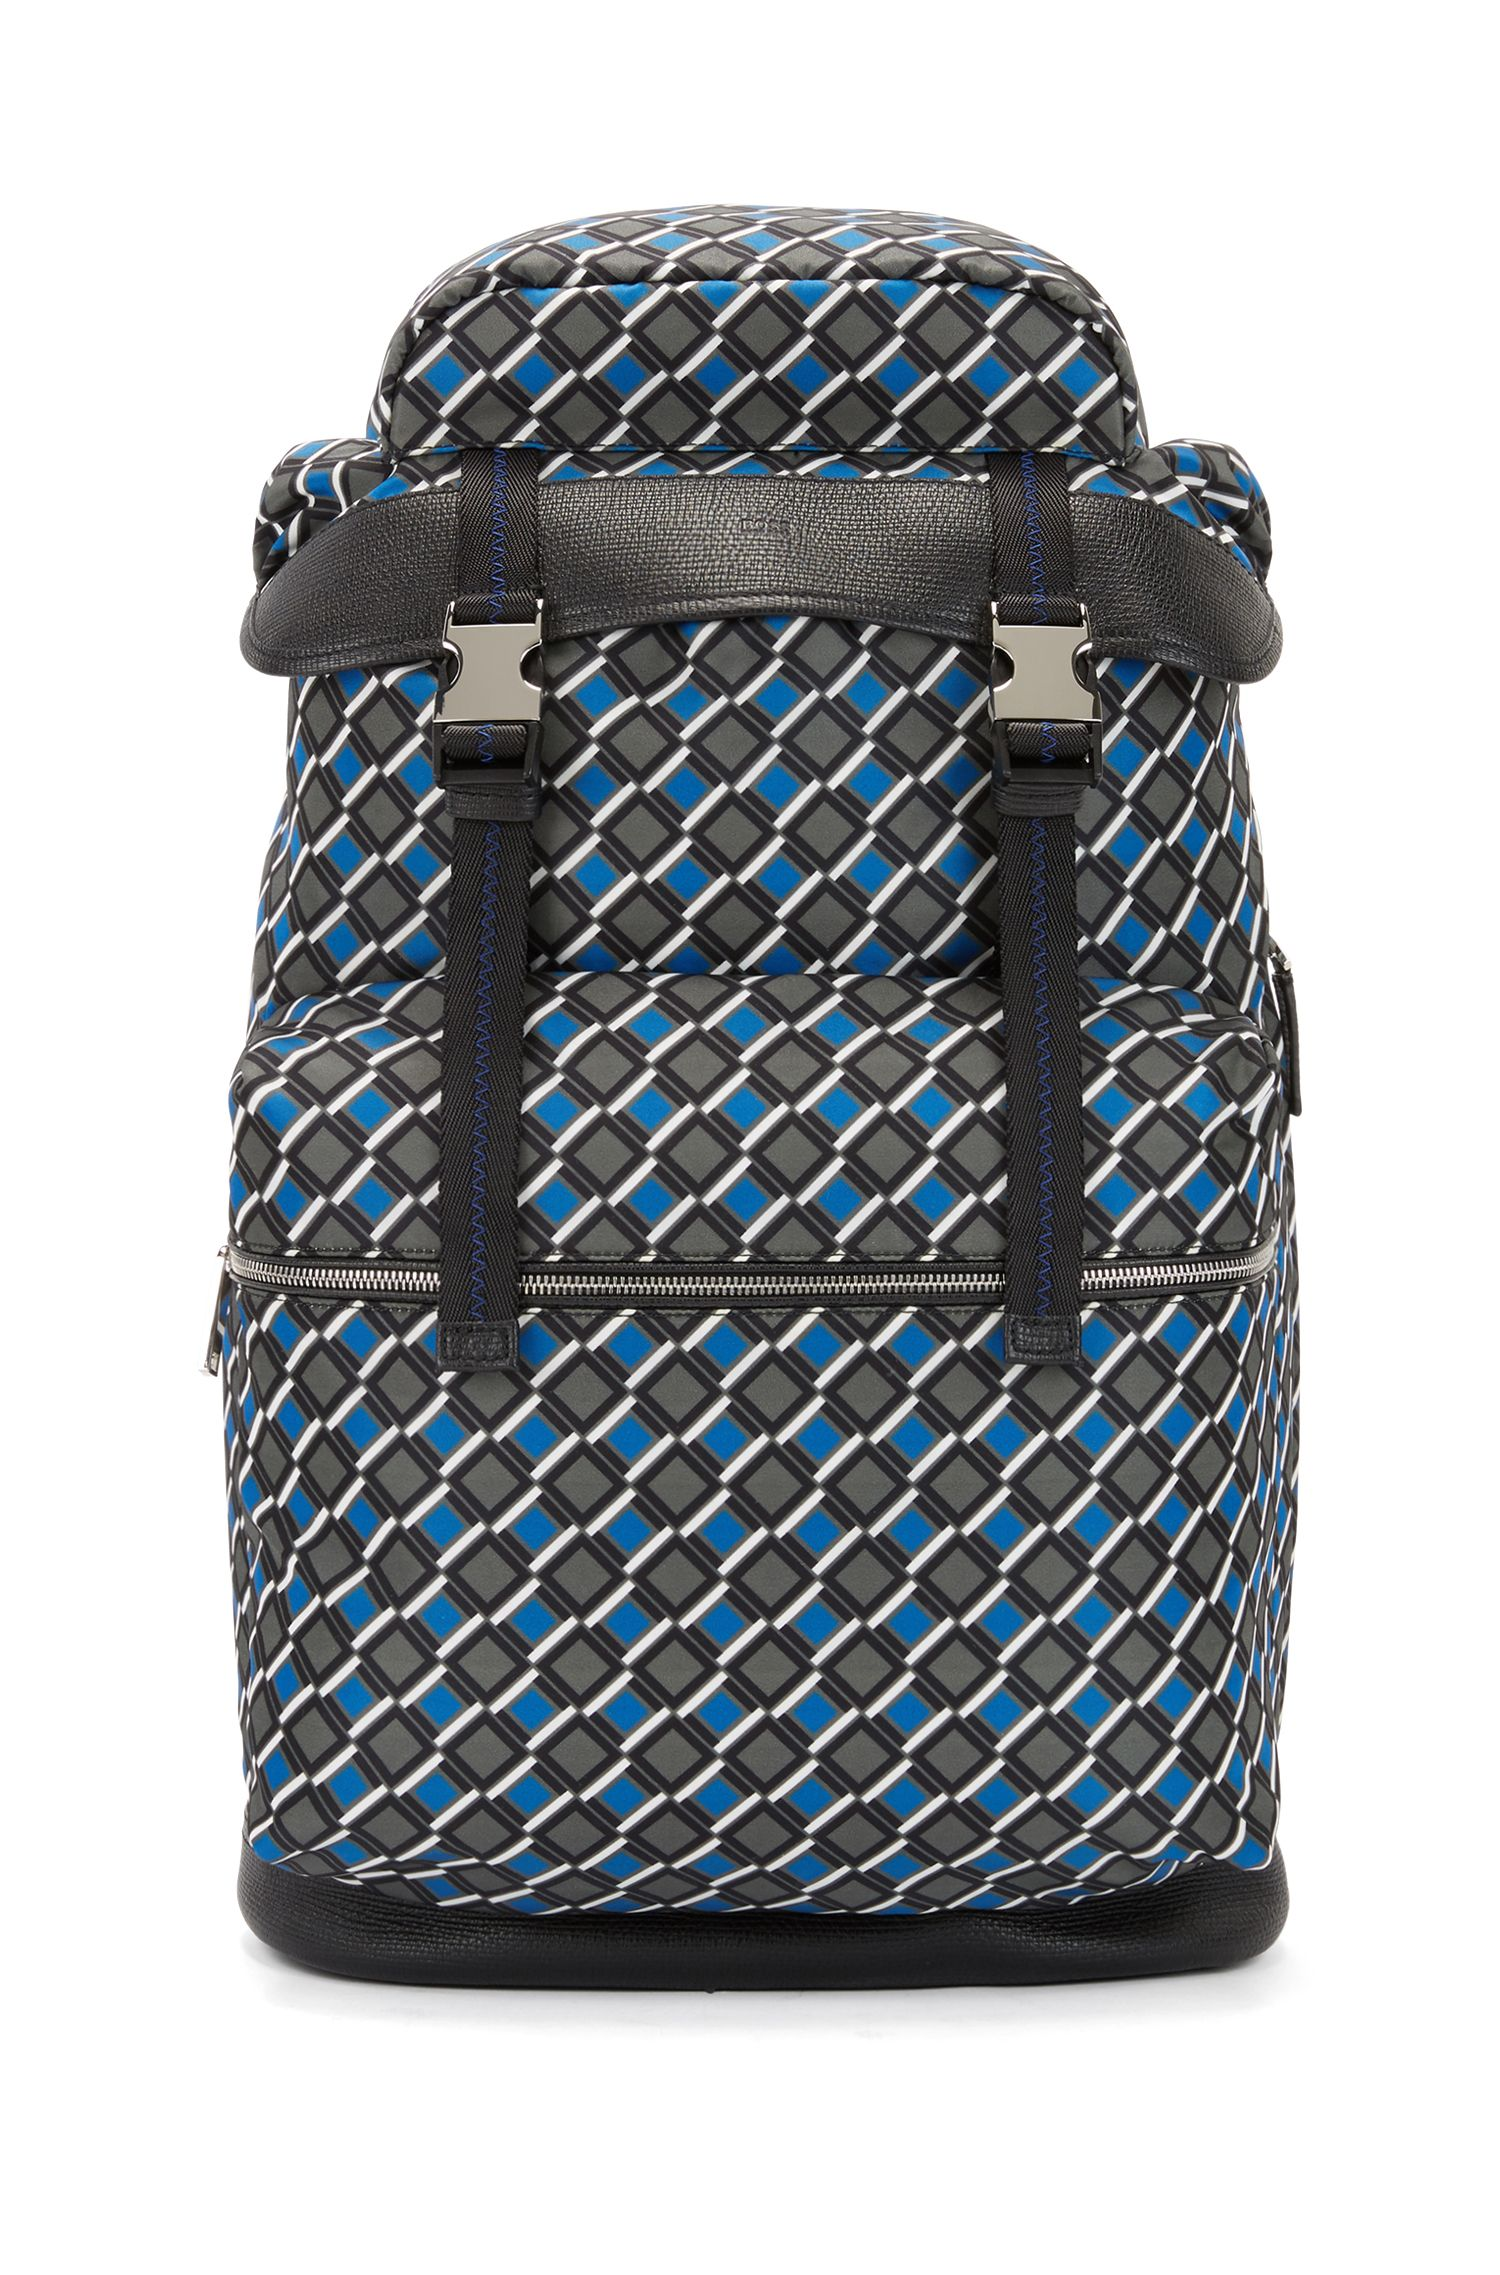 Printed backpack in nylon gabardine with calf-leather trims, Patterned